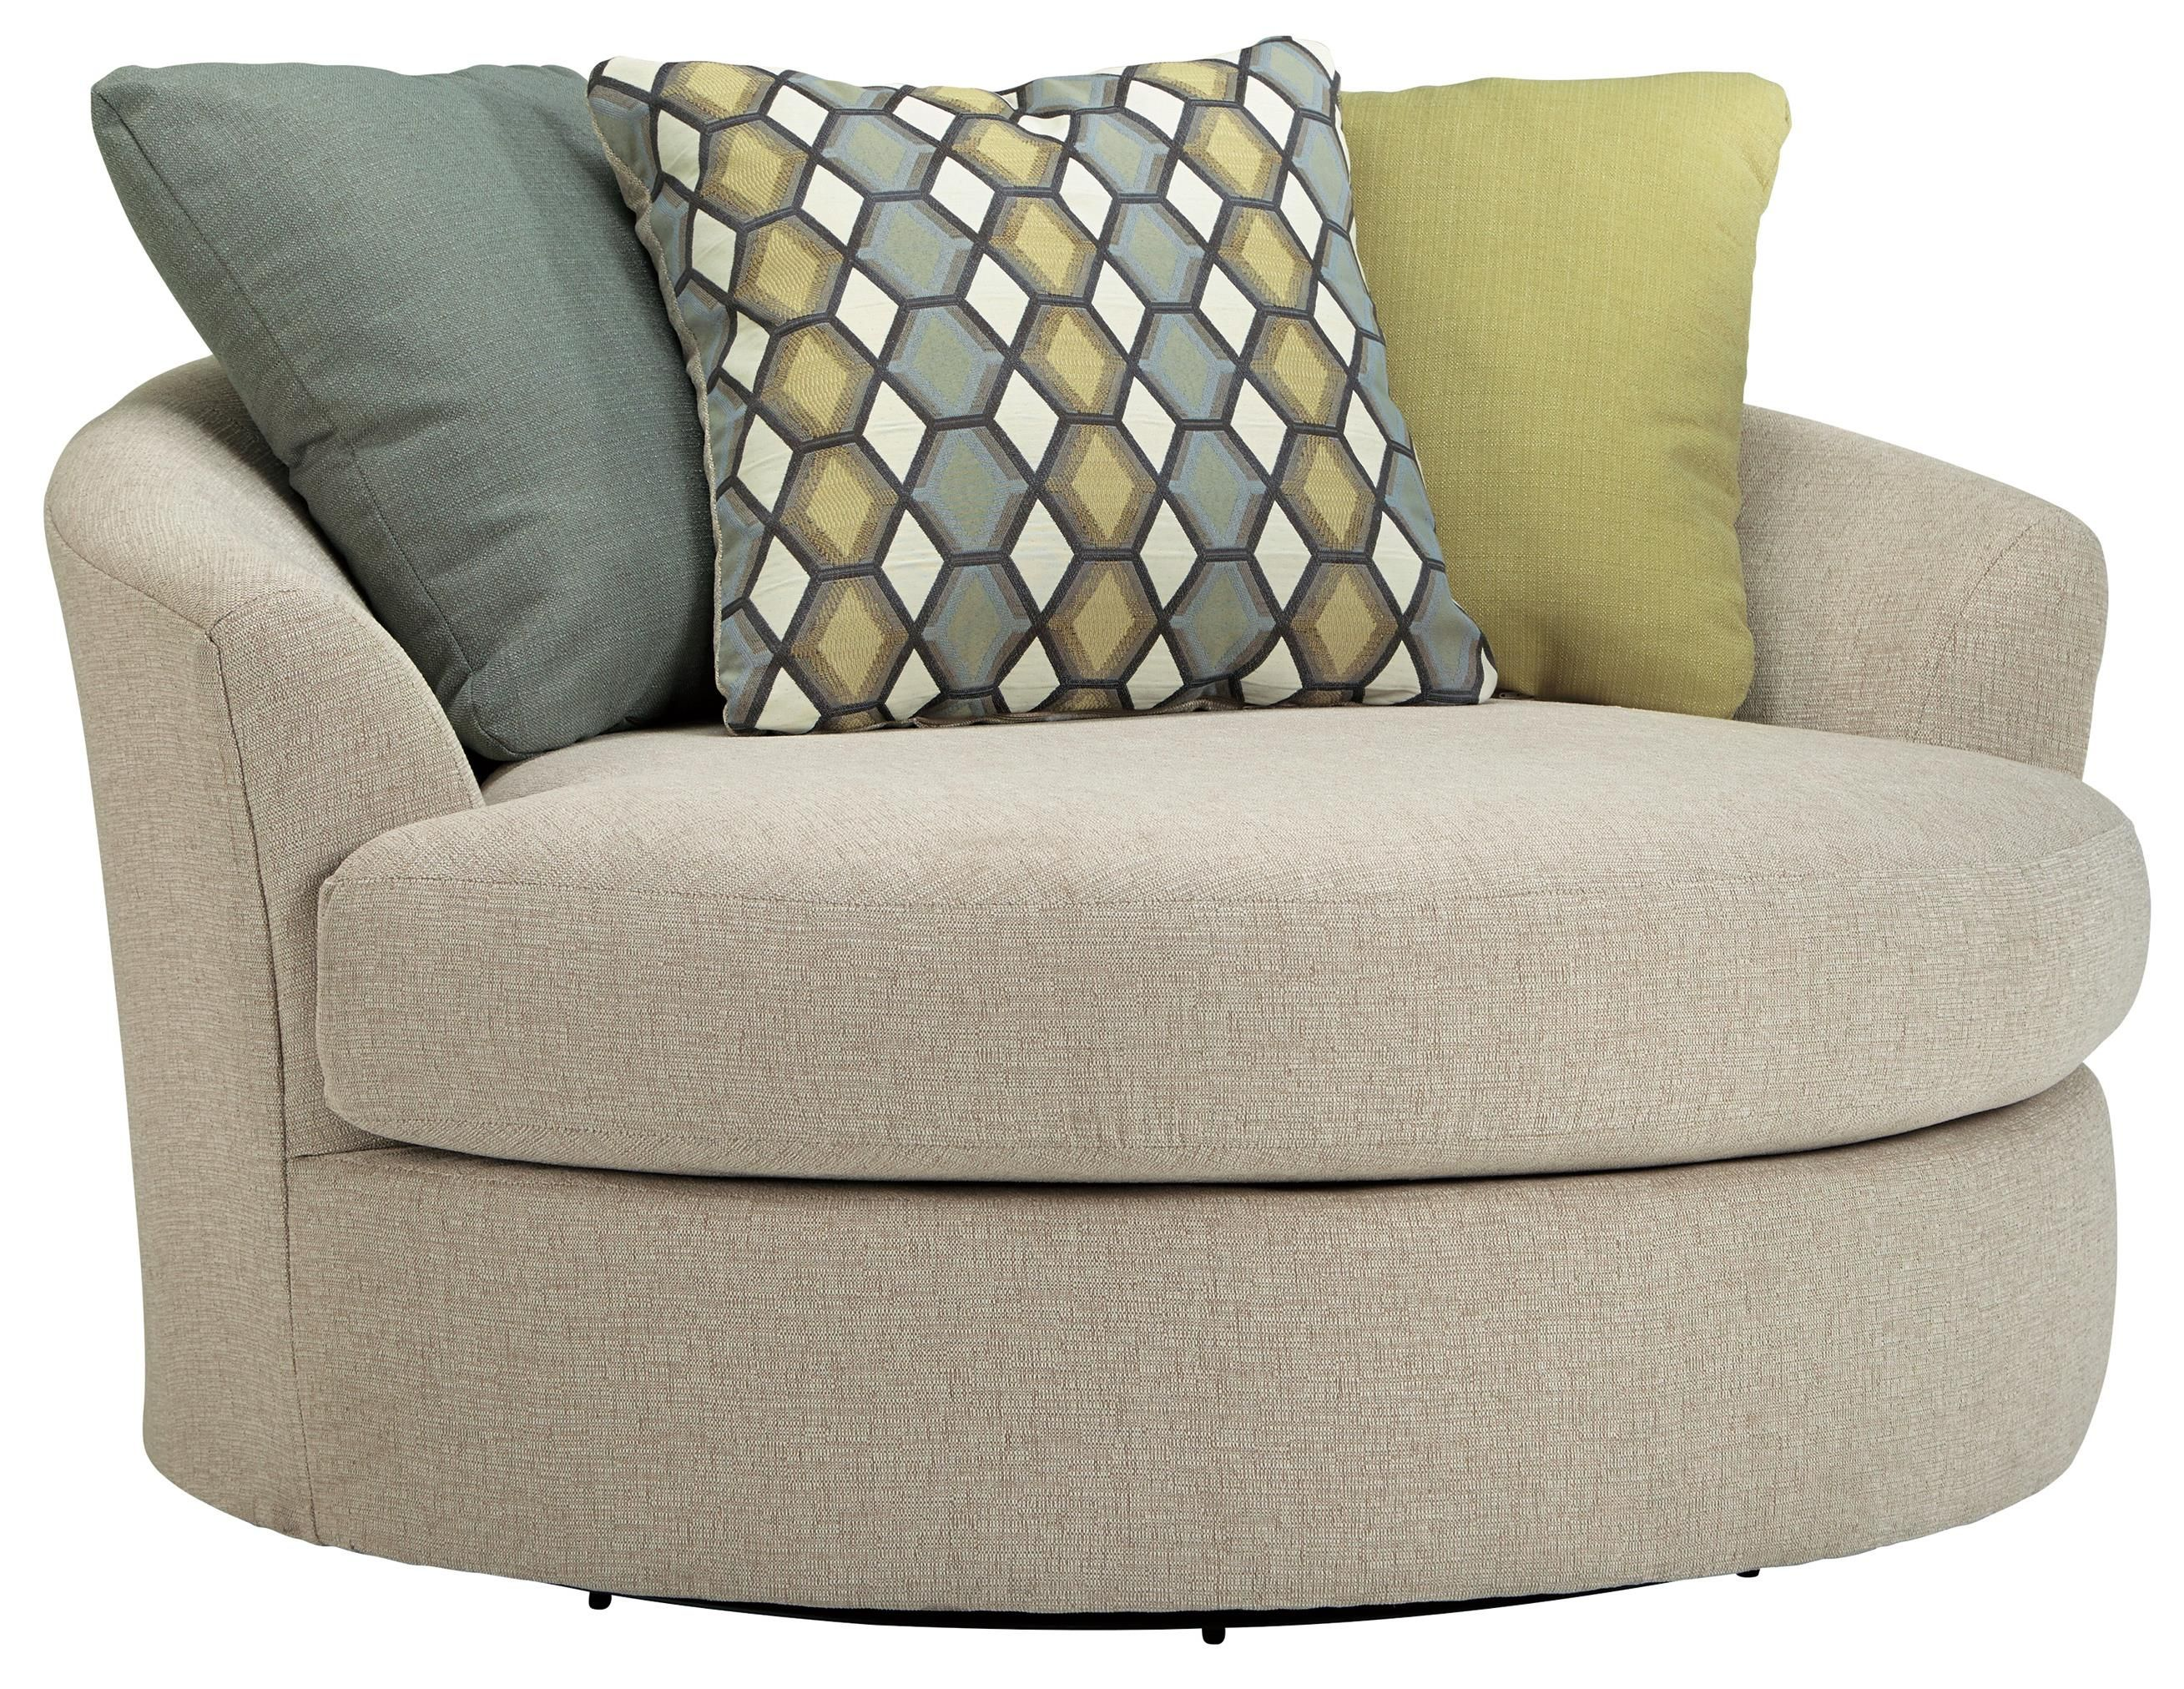 Benchcraft Casheral Round Oversized Swivel Accent Chair